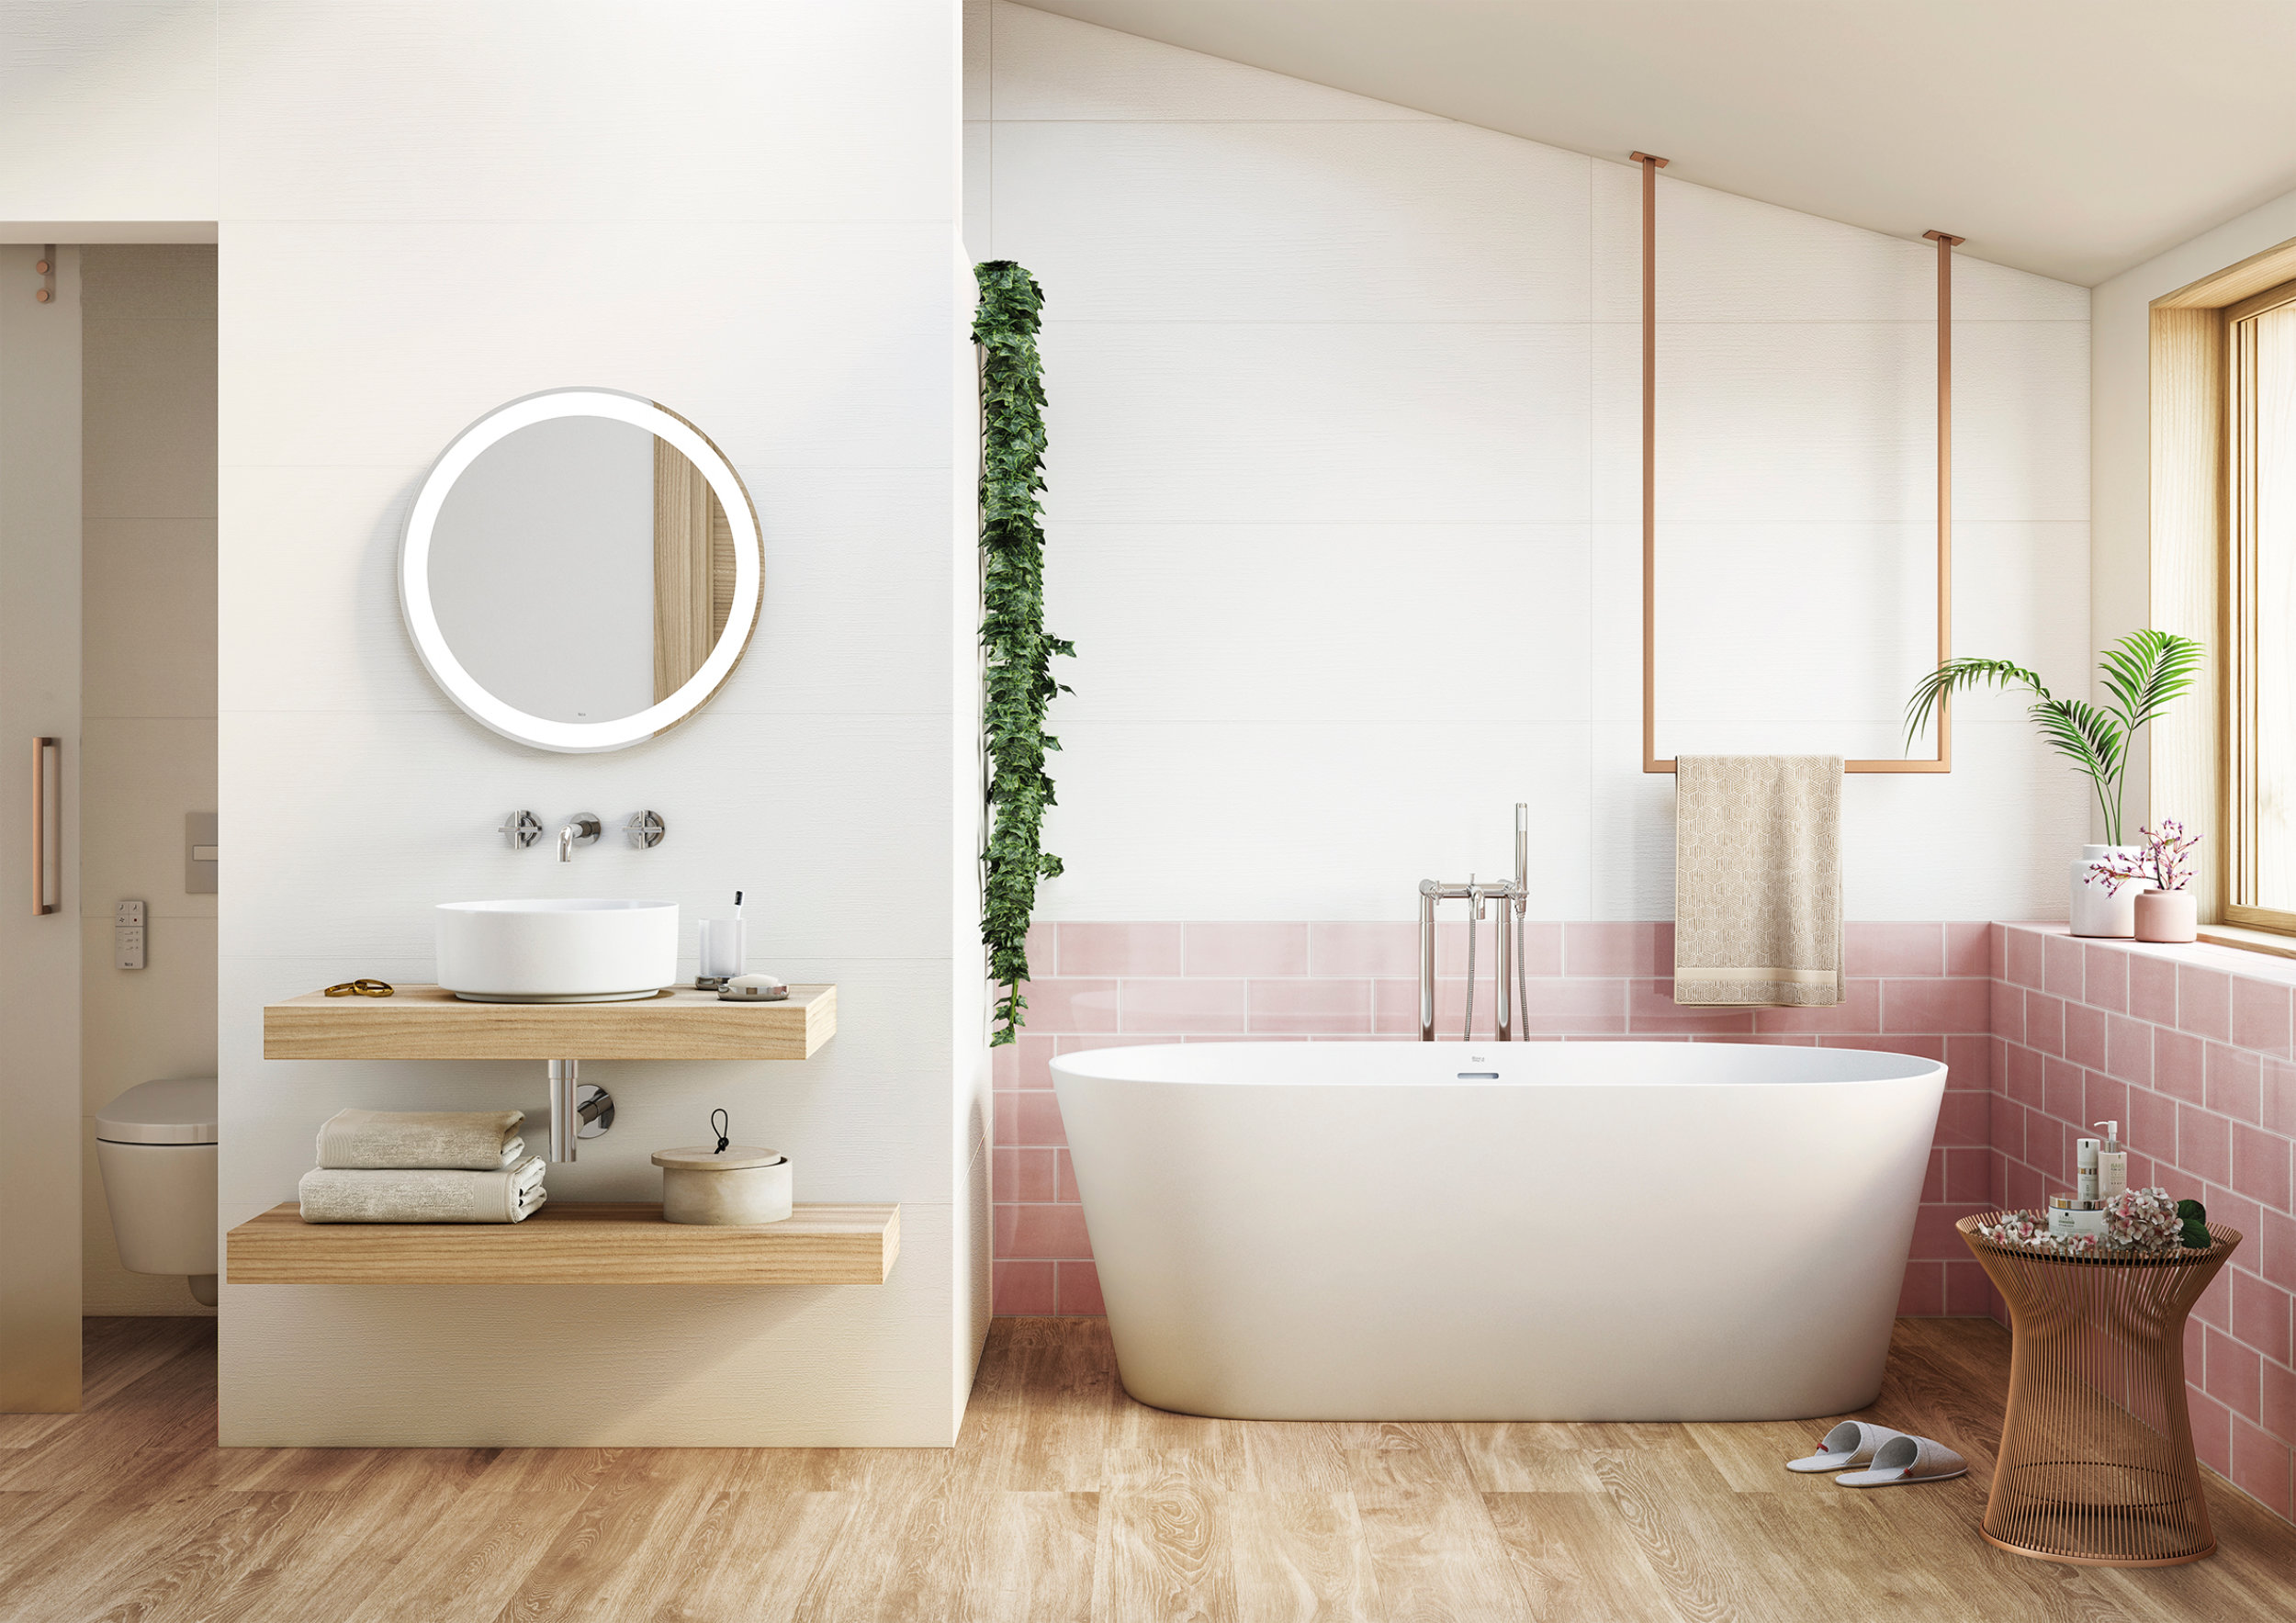 Bathroom with velvet pink tile and wooden floor by MOXIE